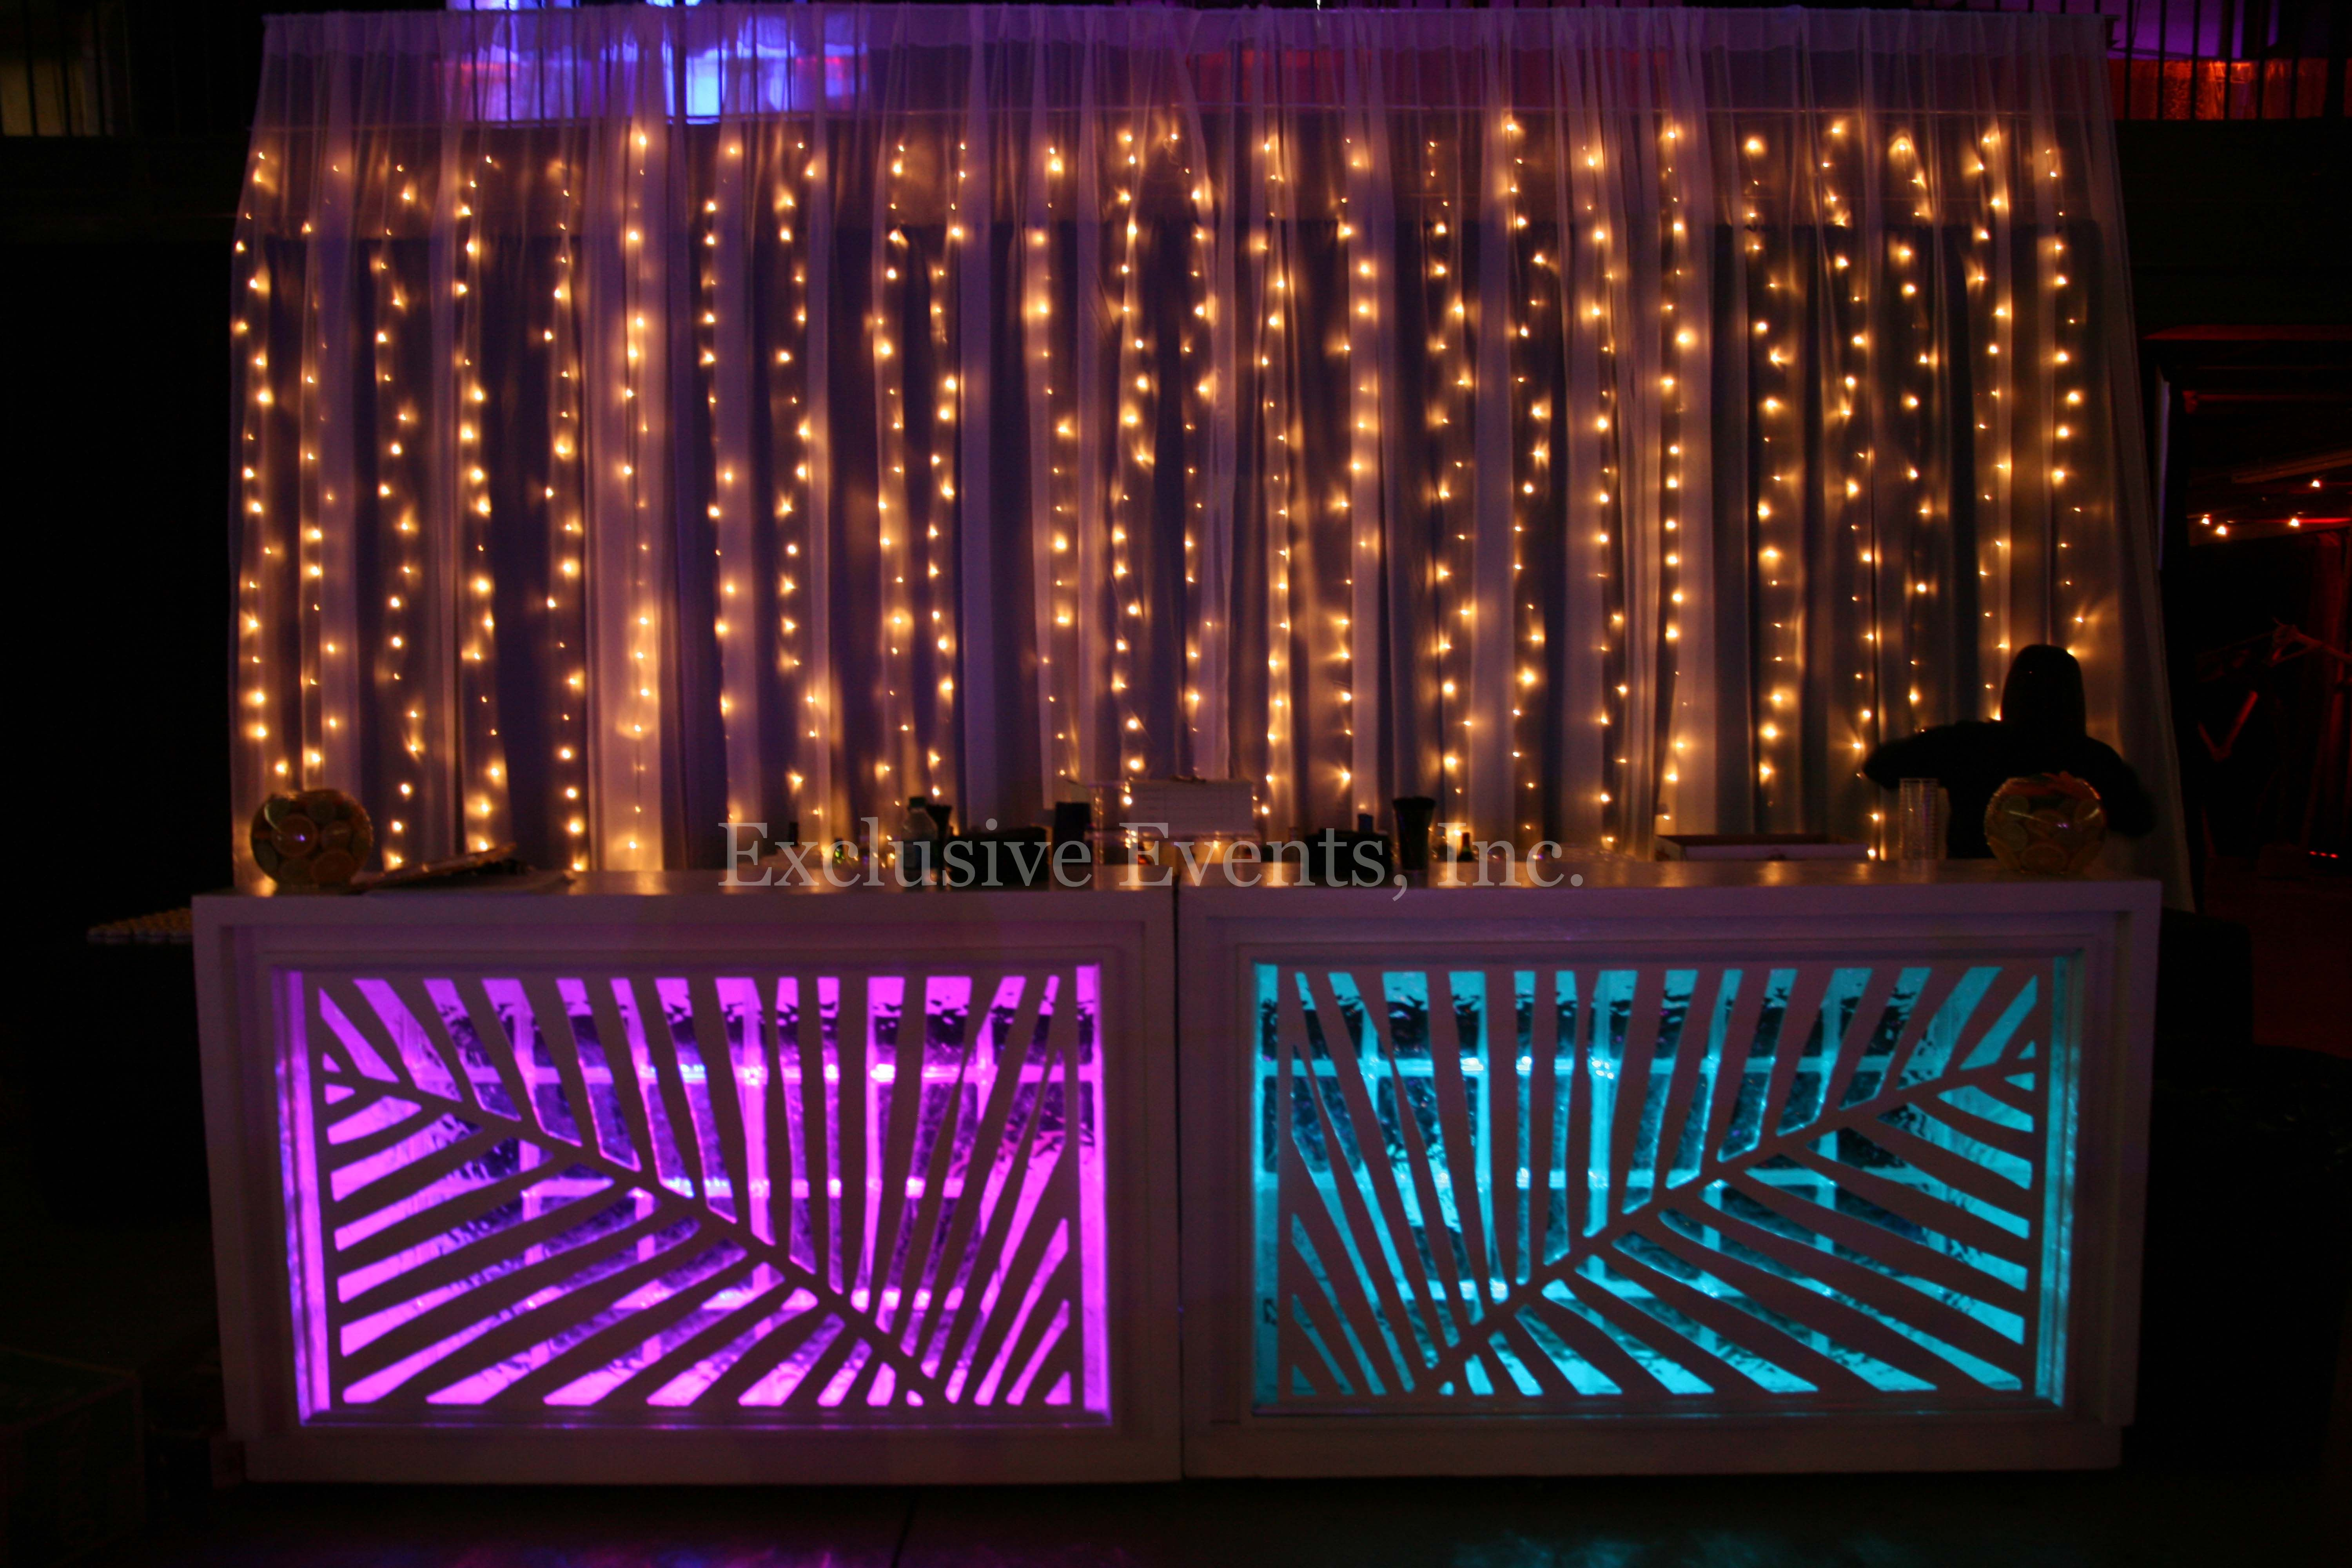 Light Up Bar Twinkle Light Curtain Holiday Party Tiki Modern Glow